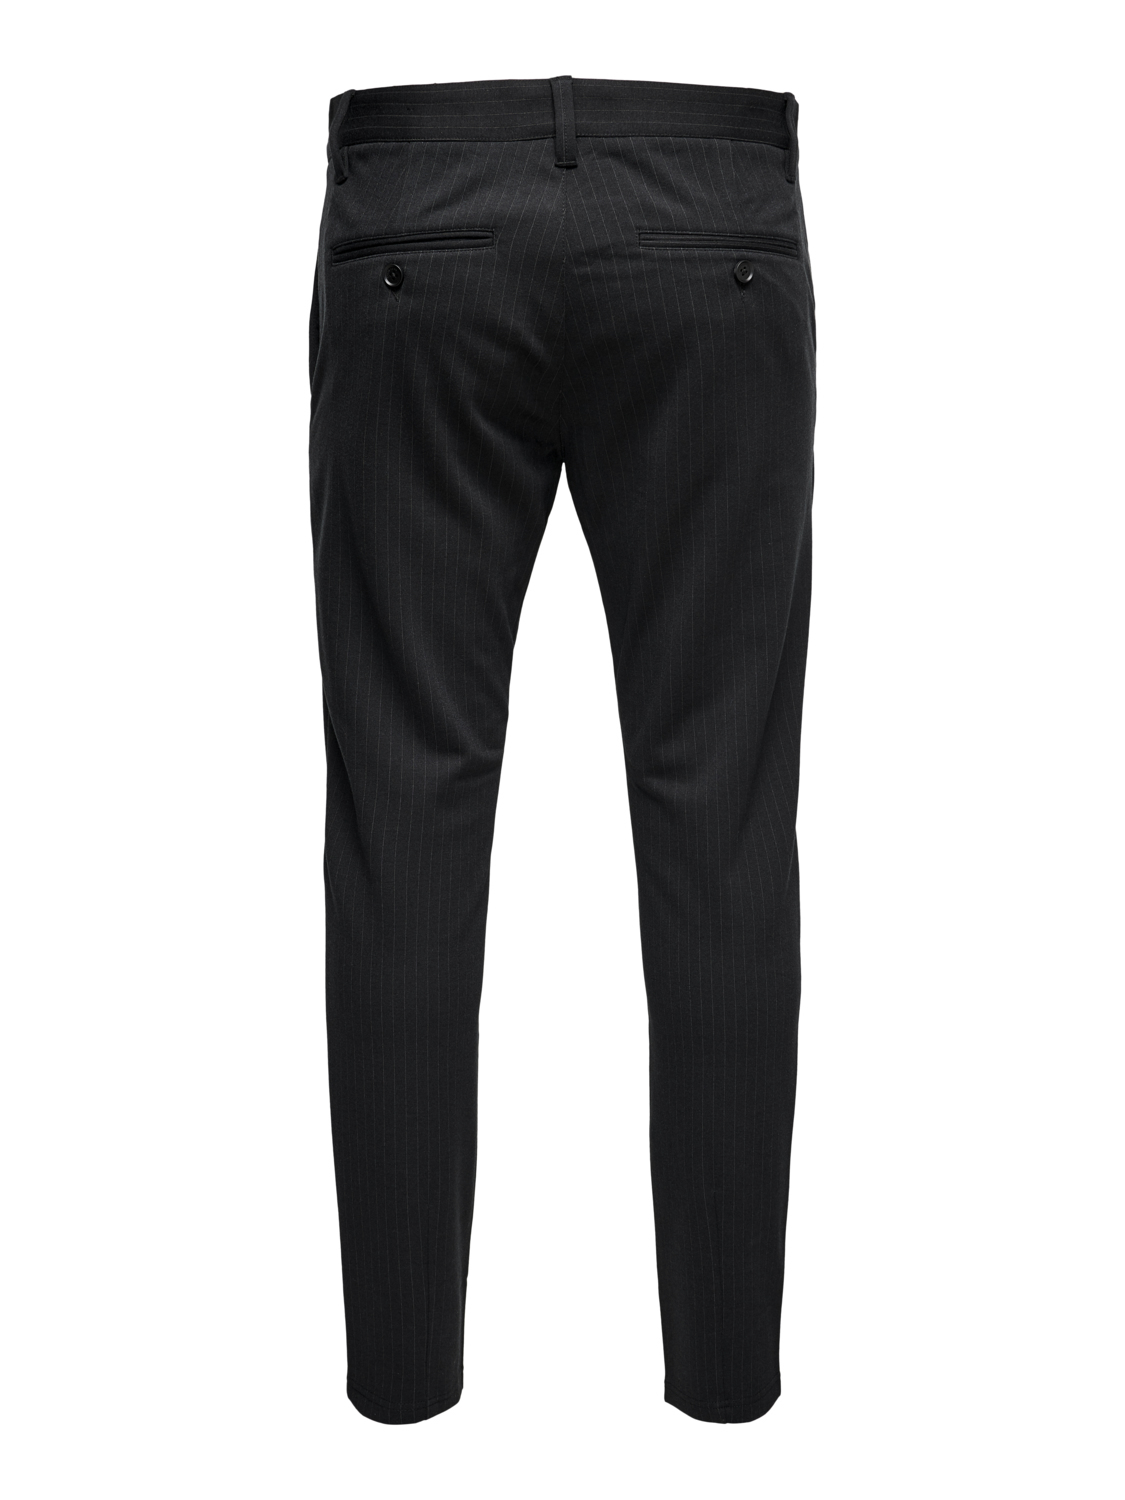 Performance Pants, Only & Sons, Mark striped chinos, black, 31/34